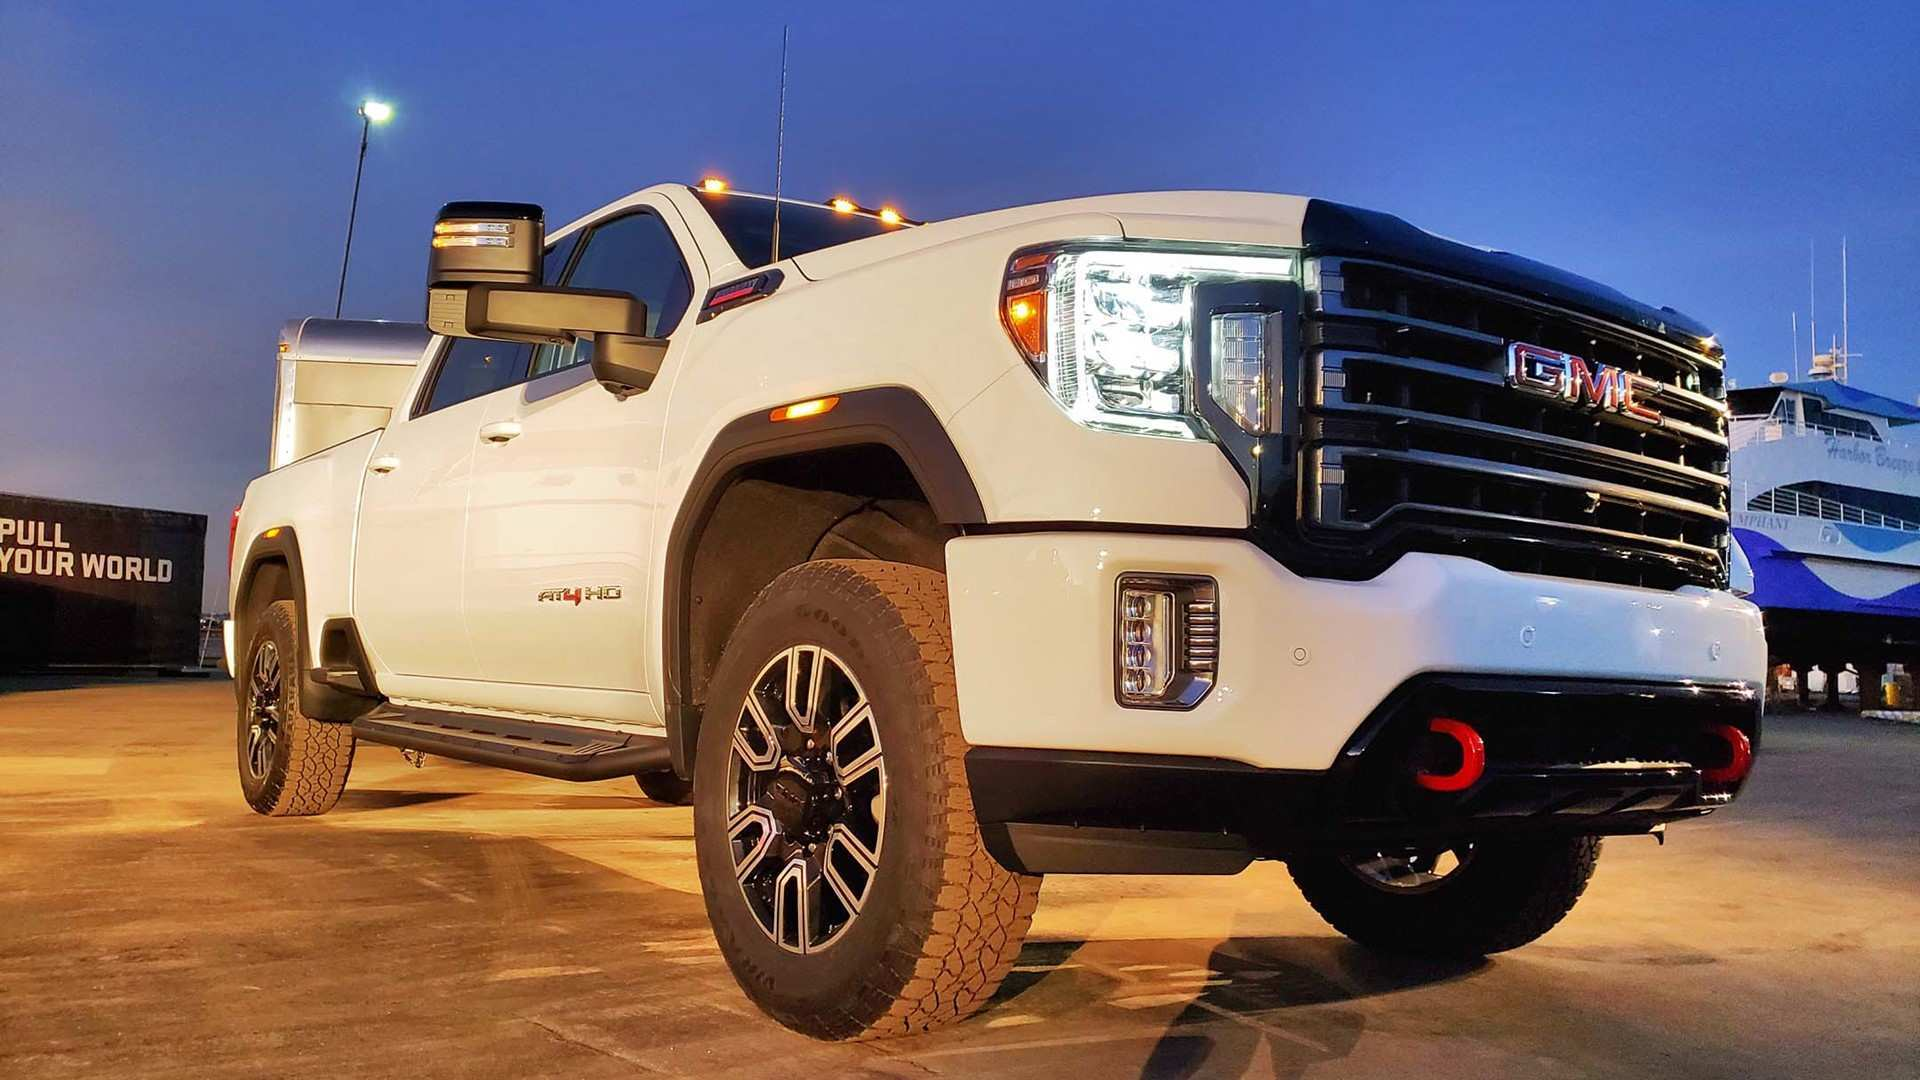 68 New GMC At4 2020 Price And Release Date